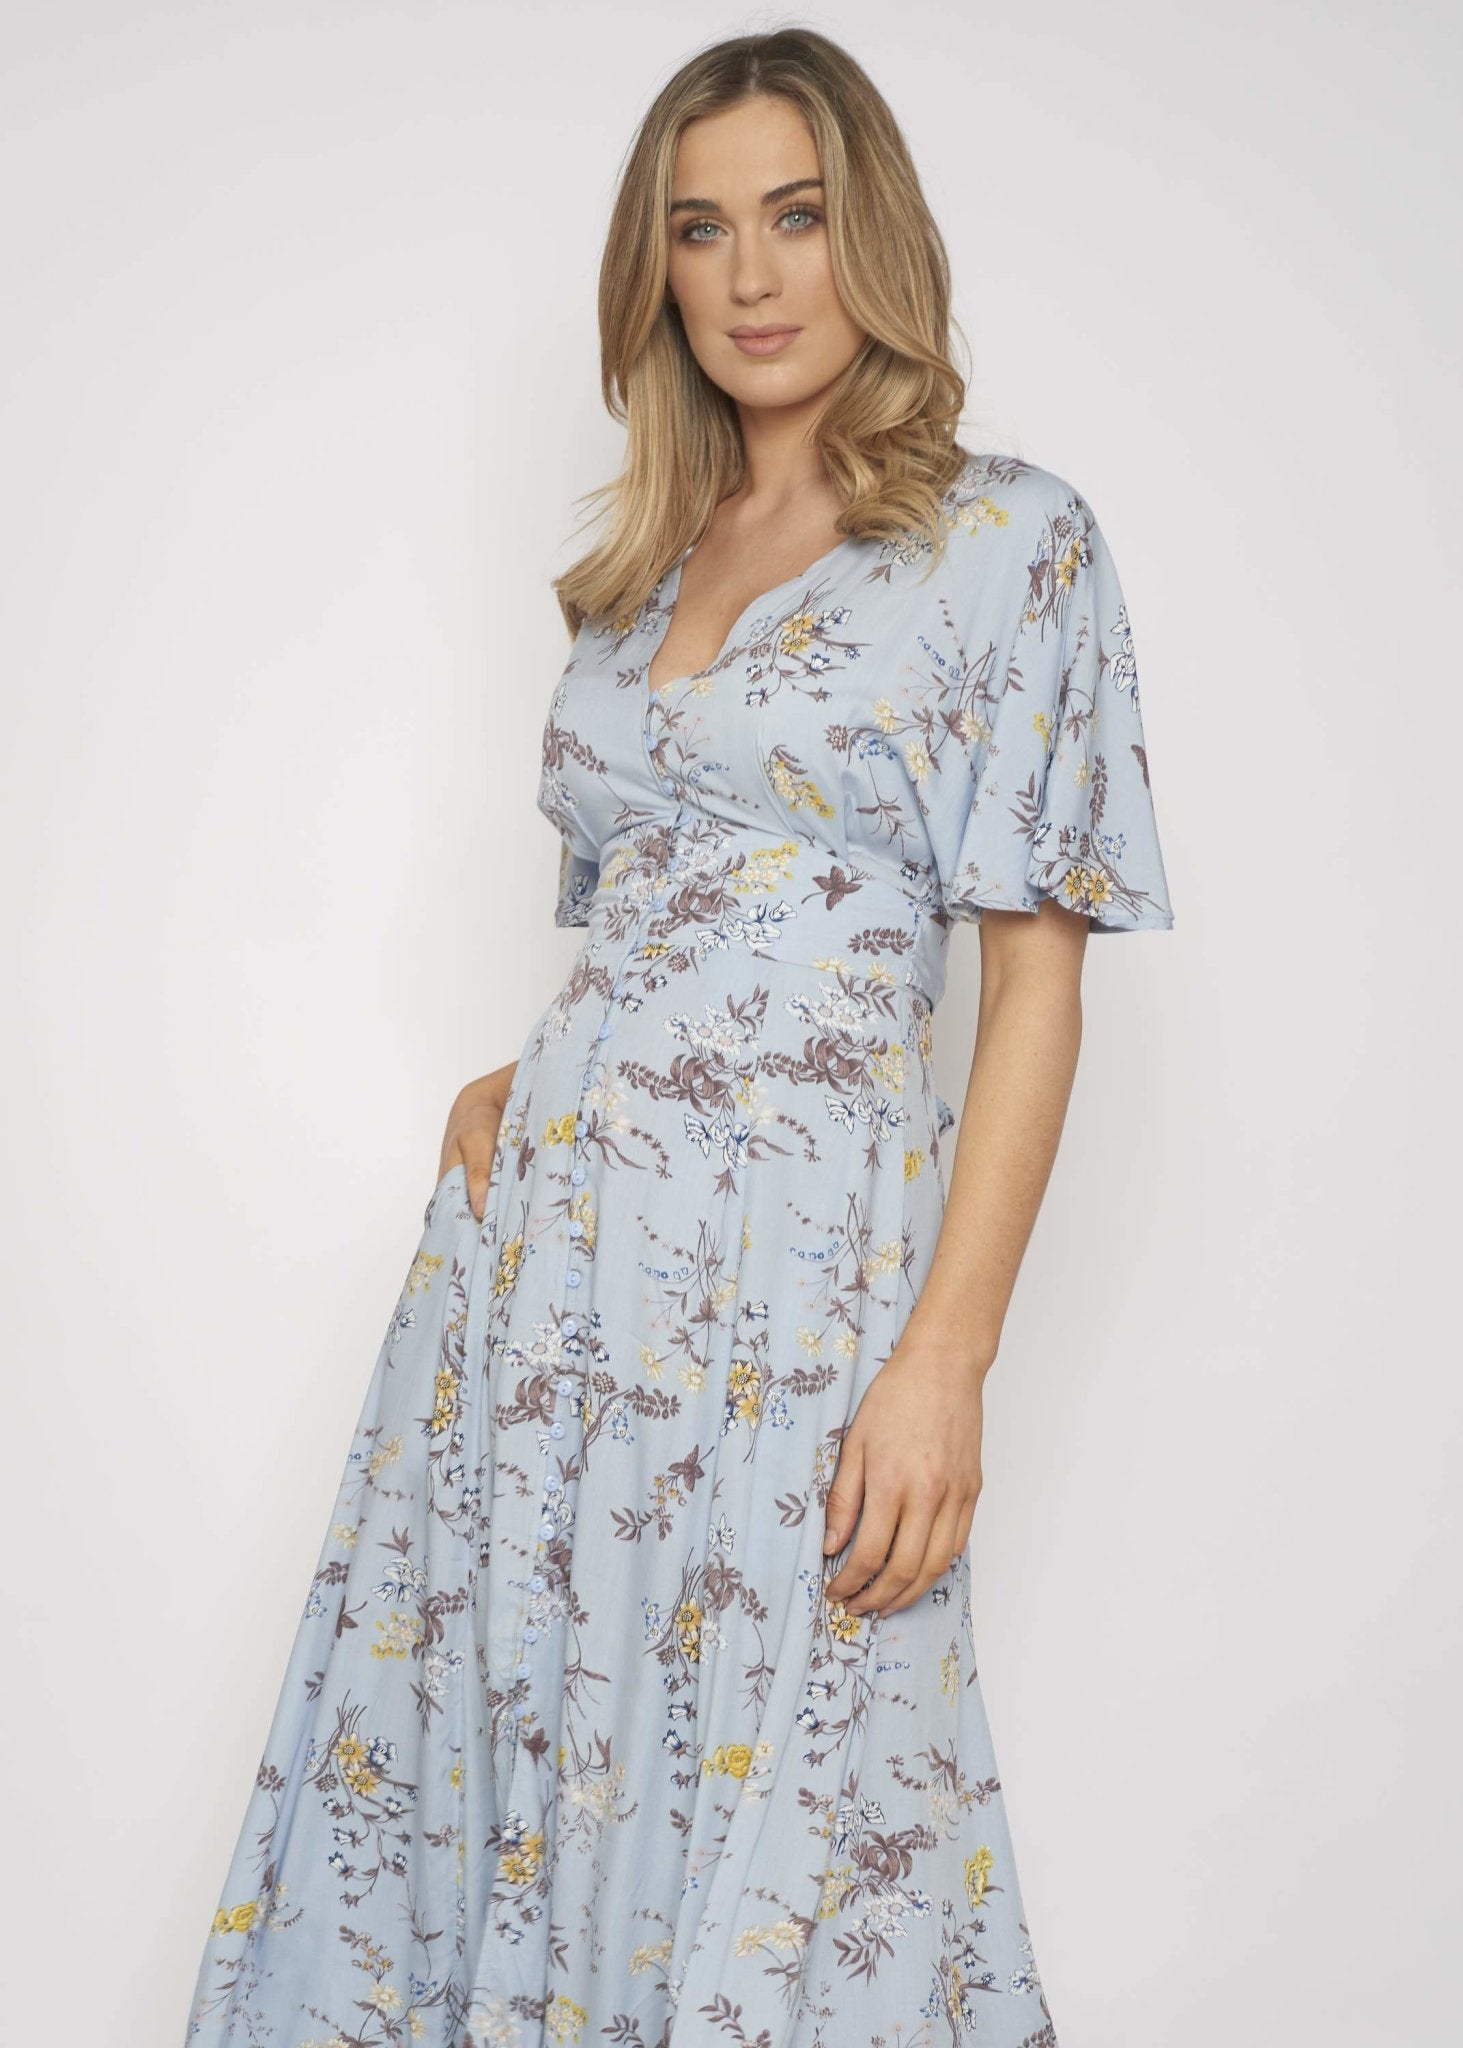 Nora Floral Print Dress In Blue Mix - The Walk in Wardrobe